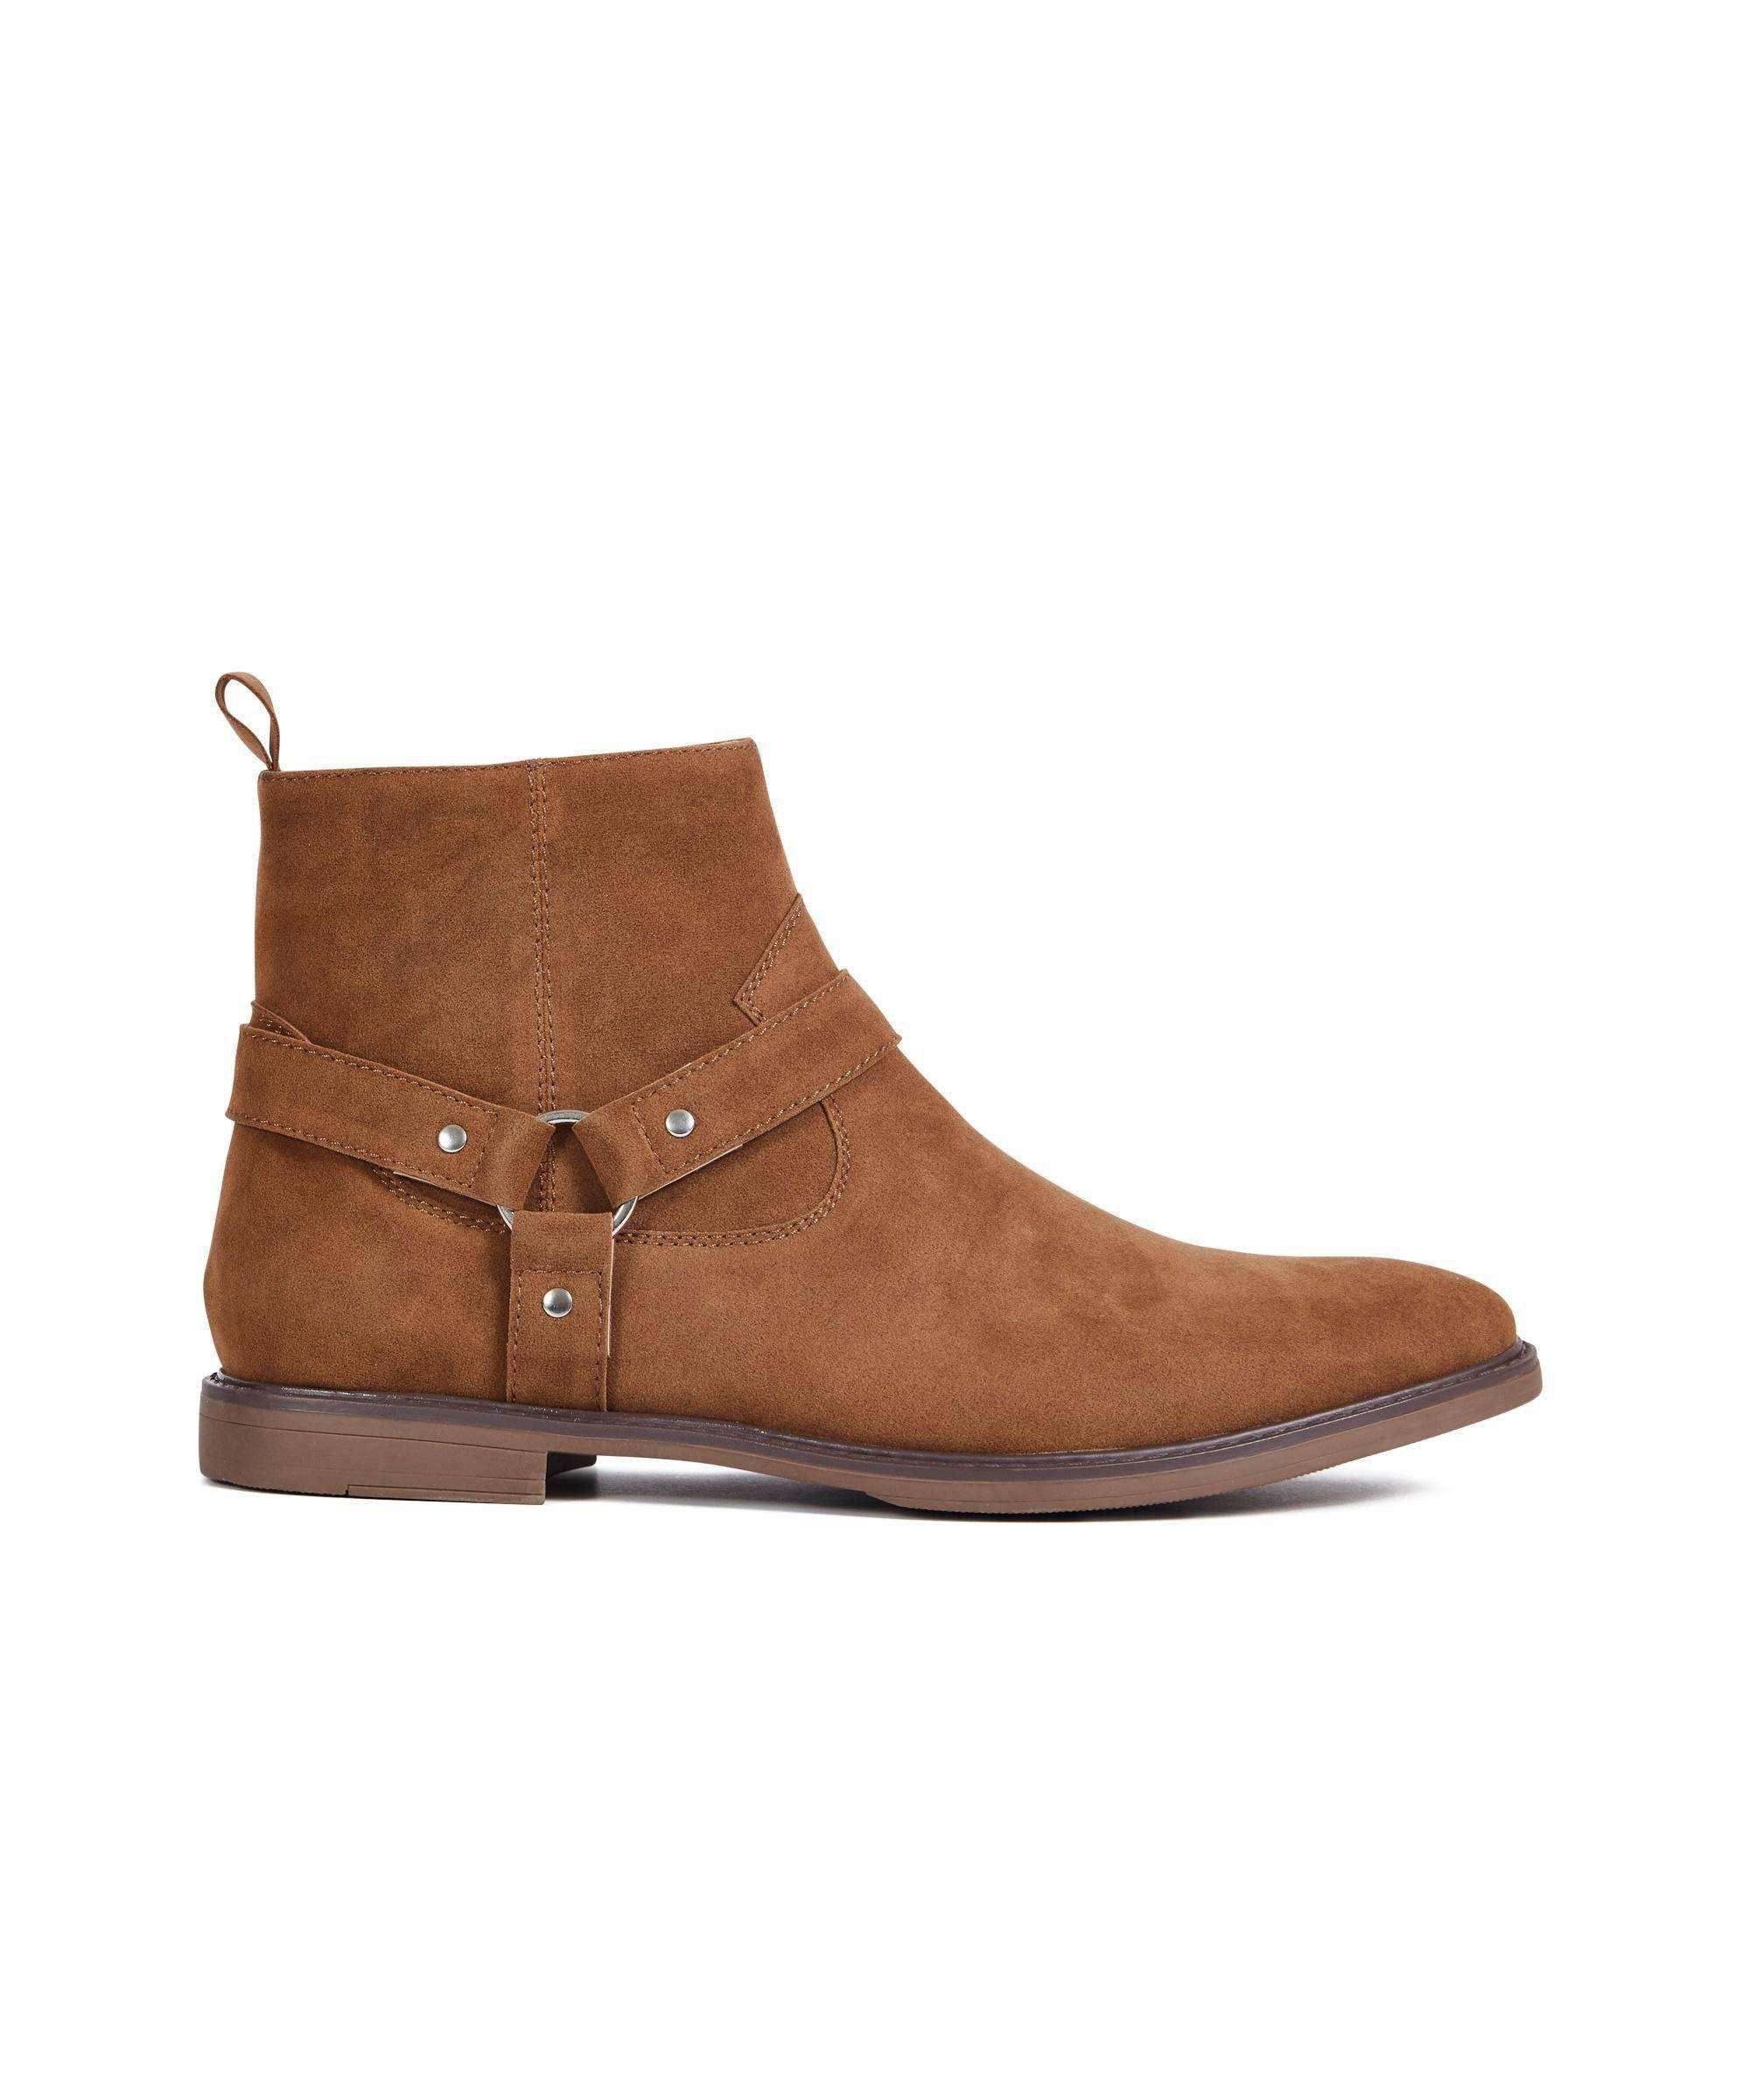 MERCER CHELSEA BOOT - BROWN - Reason Clothing